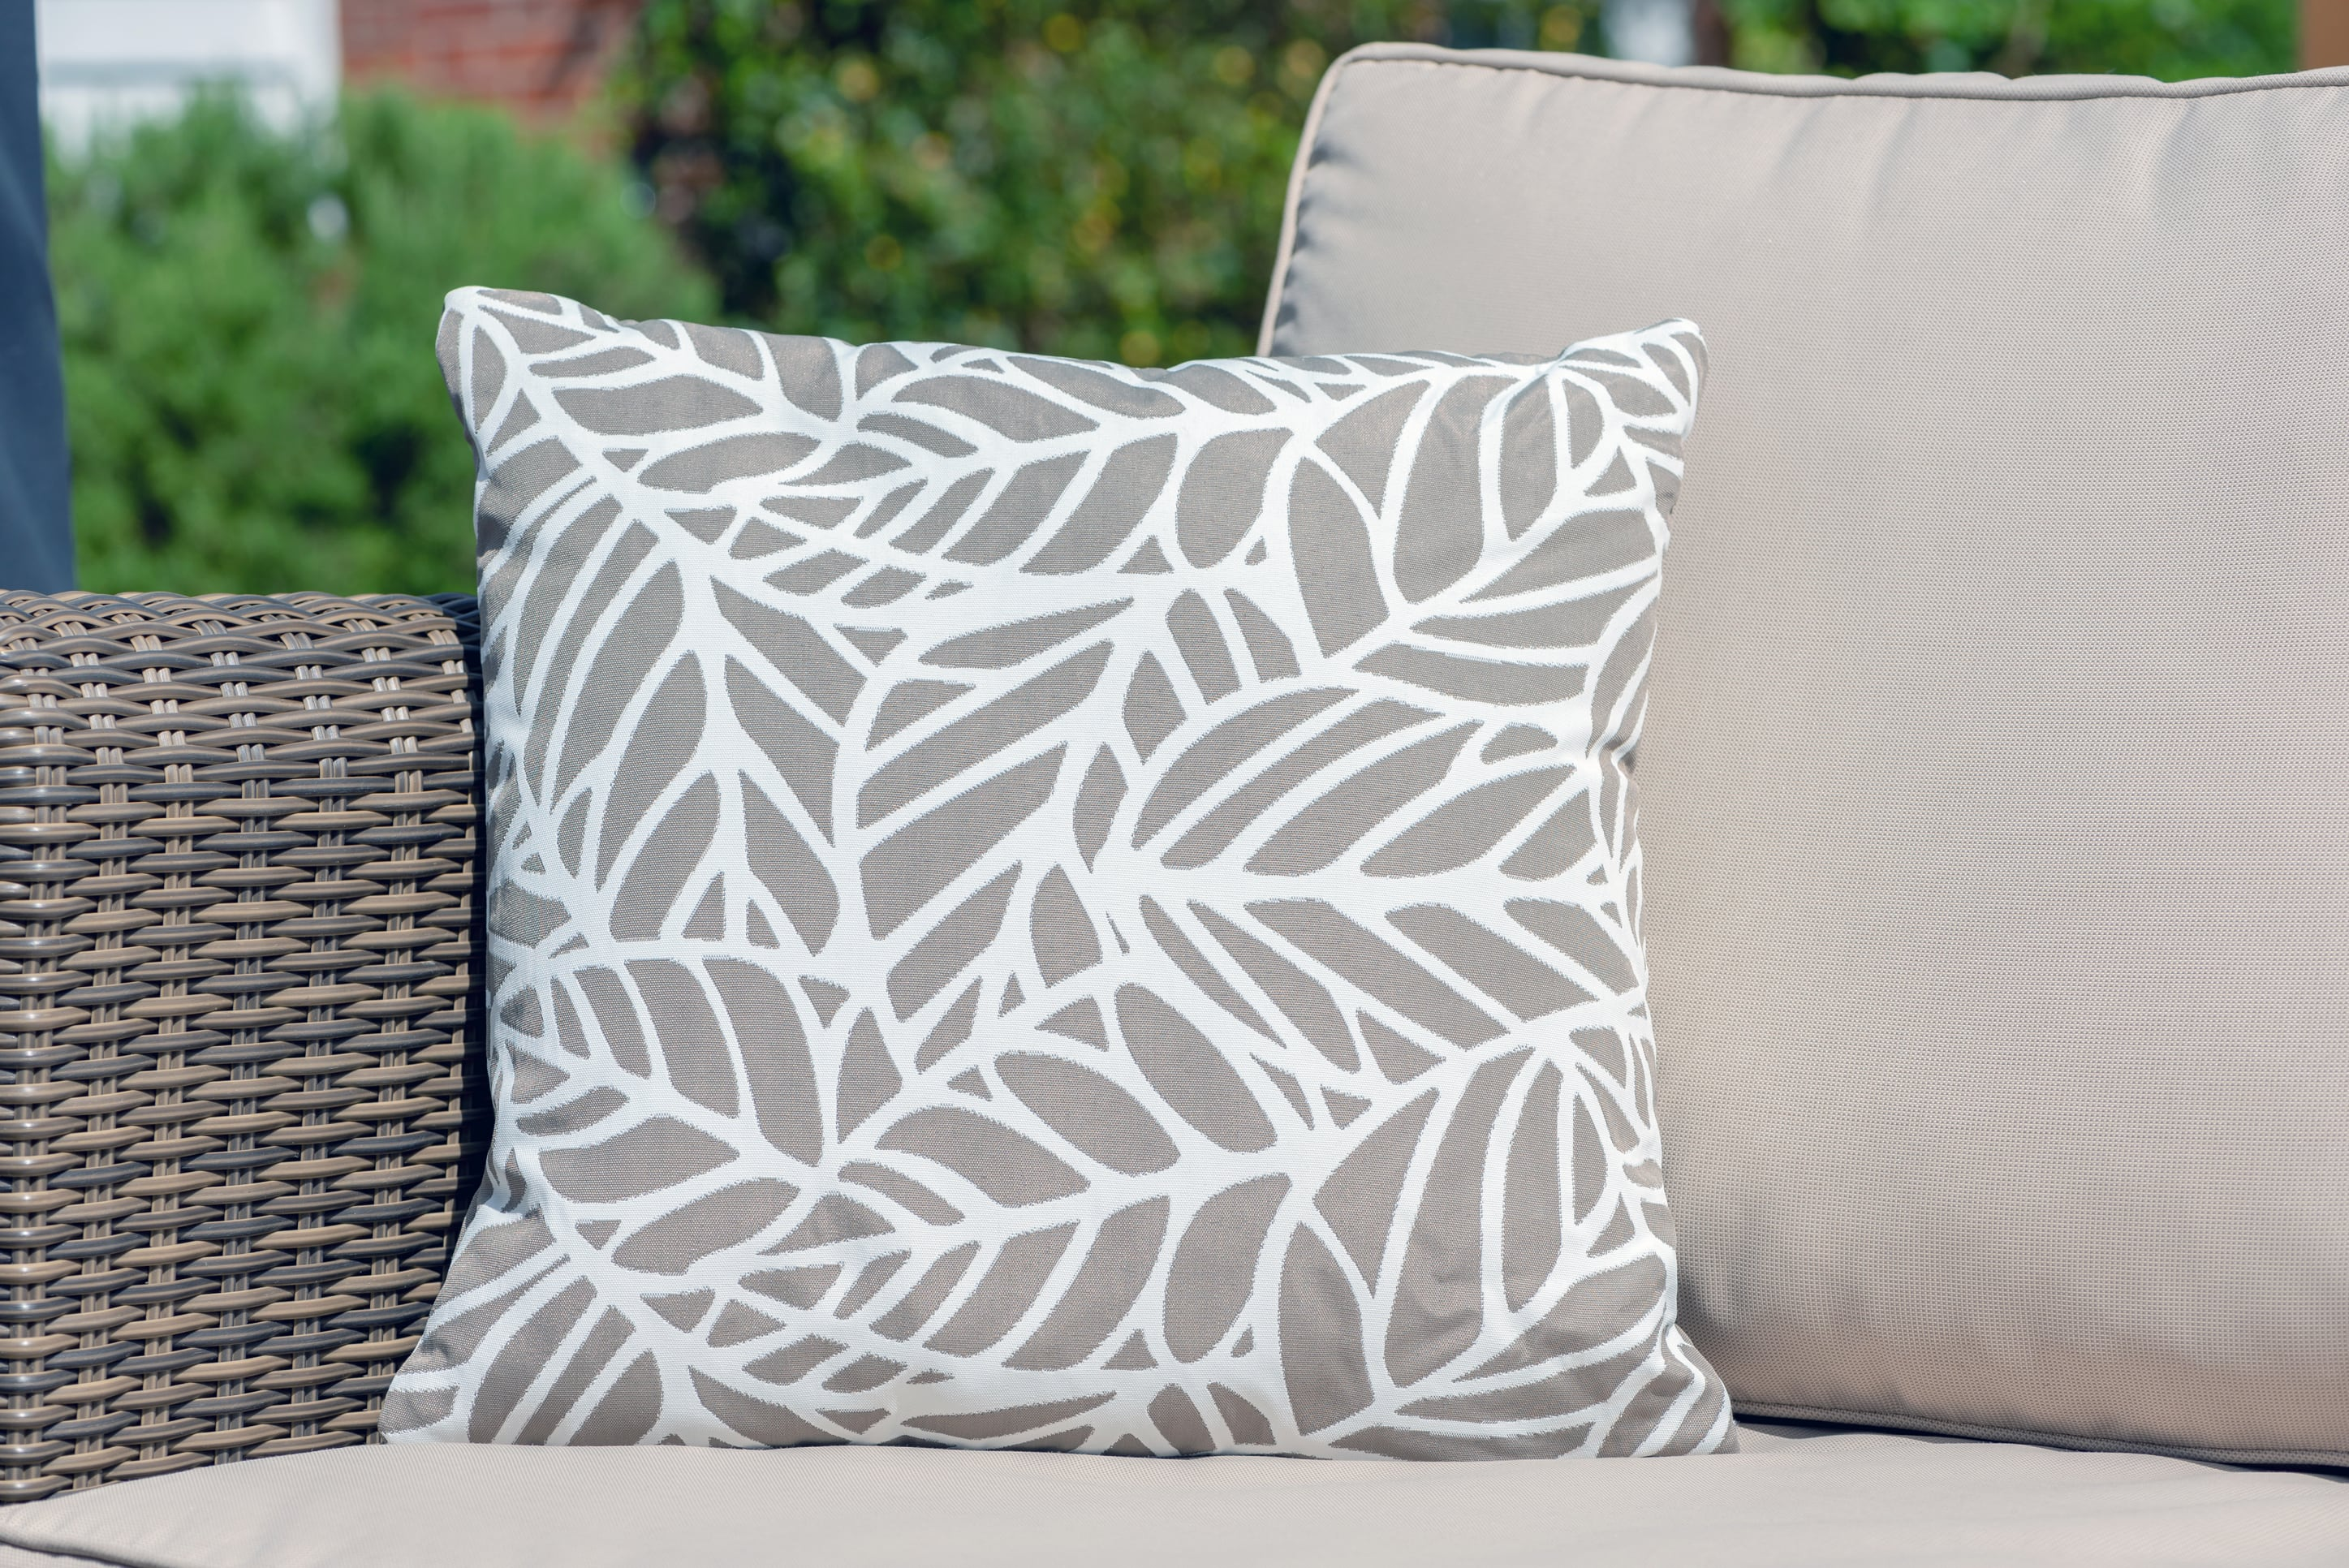 Armadillo Sun waterproof cushion in neutral pumice and white palm pattern